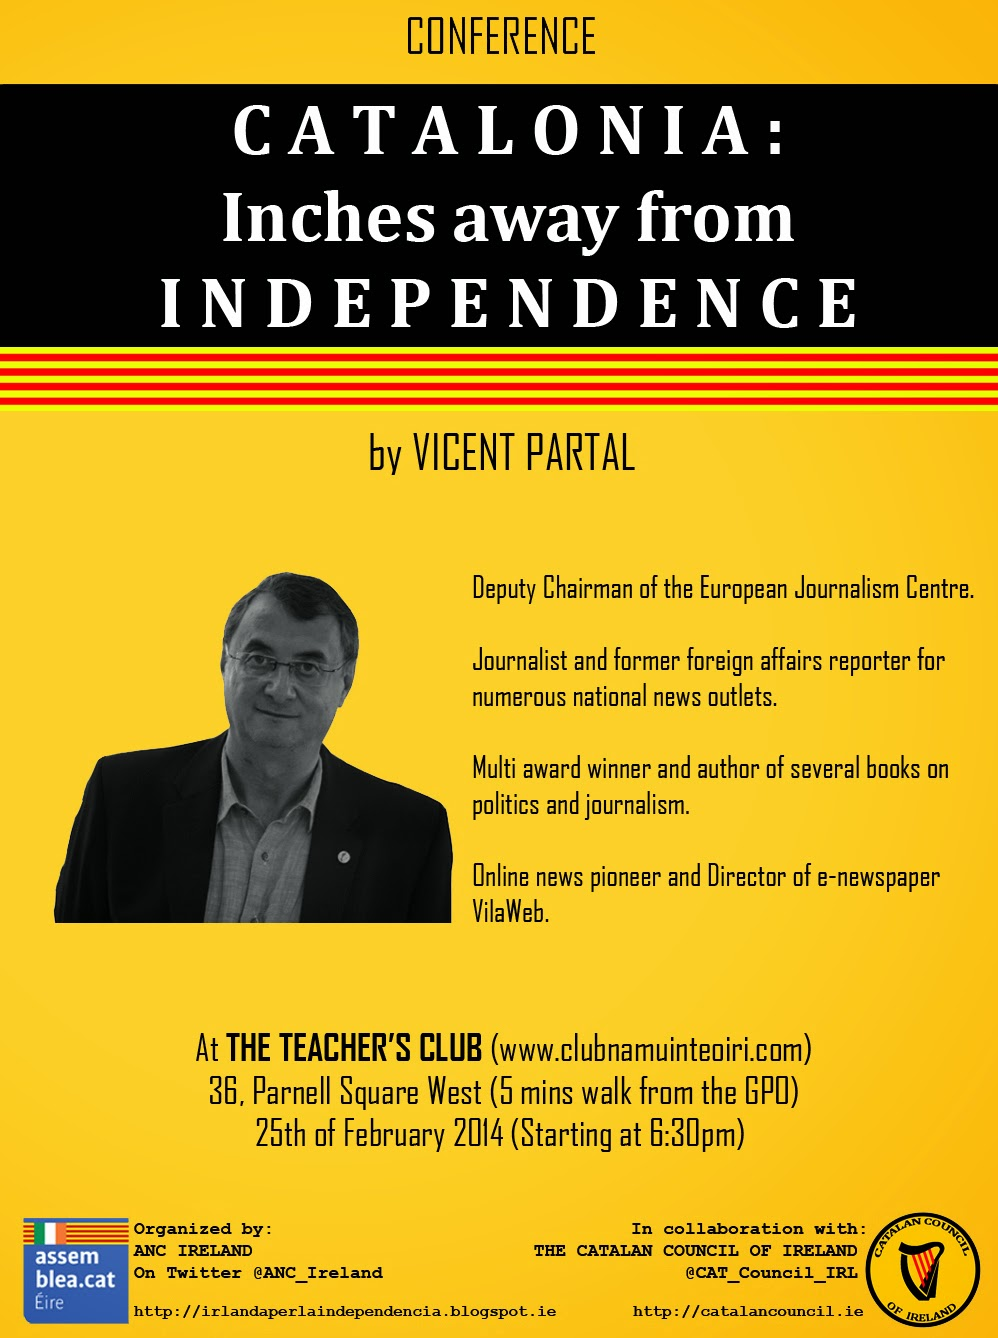 Catalonia: Inches away from independence – Conference in Dublin 25F 2014